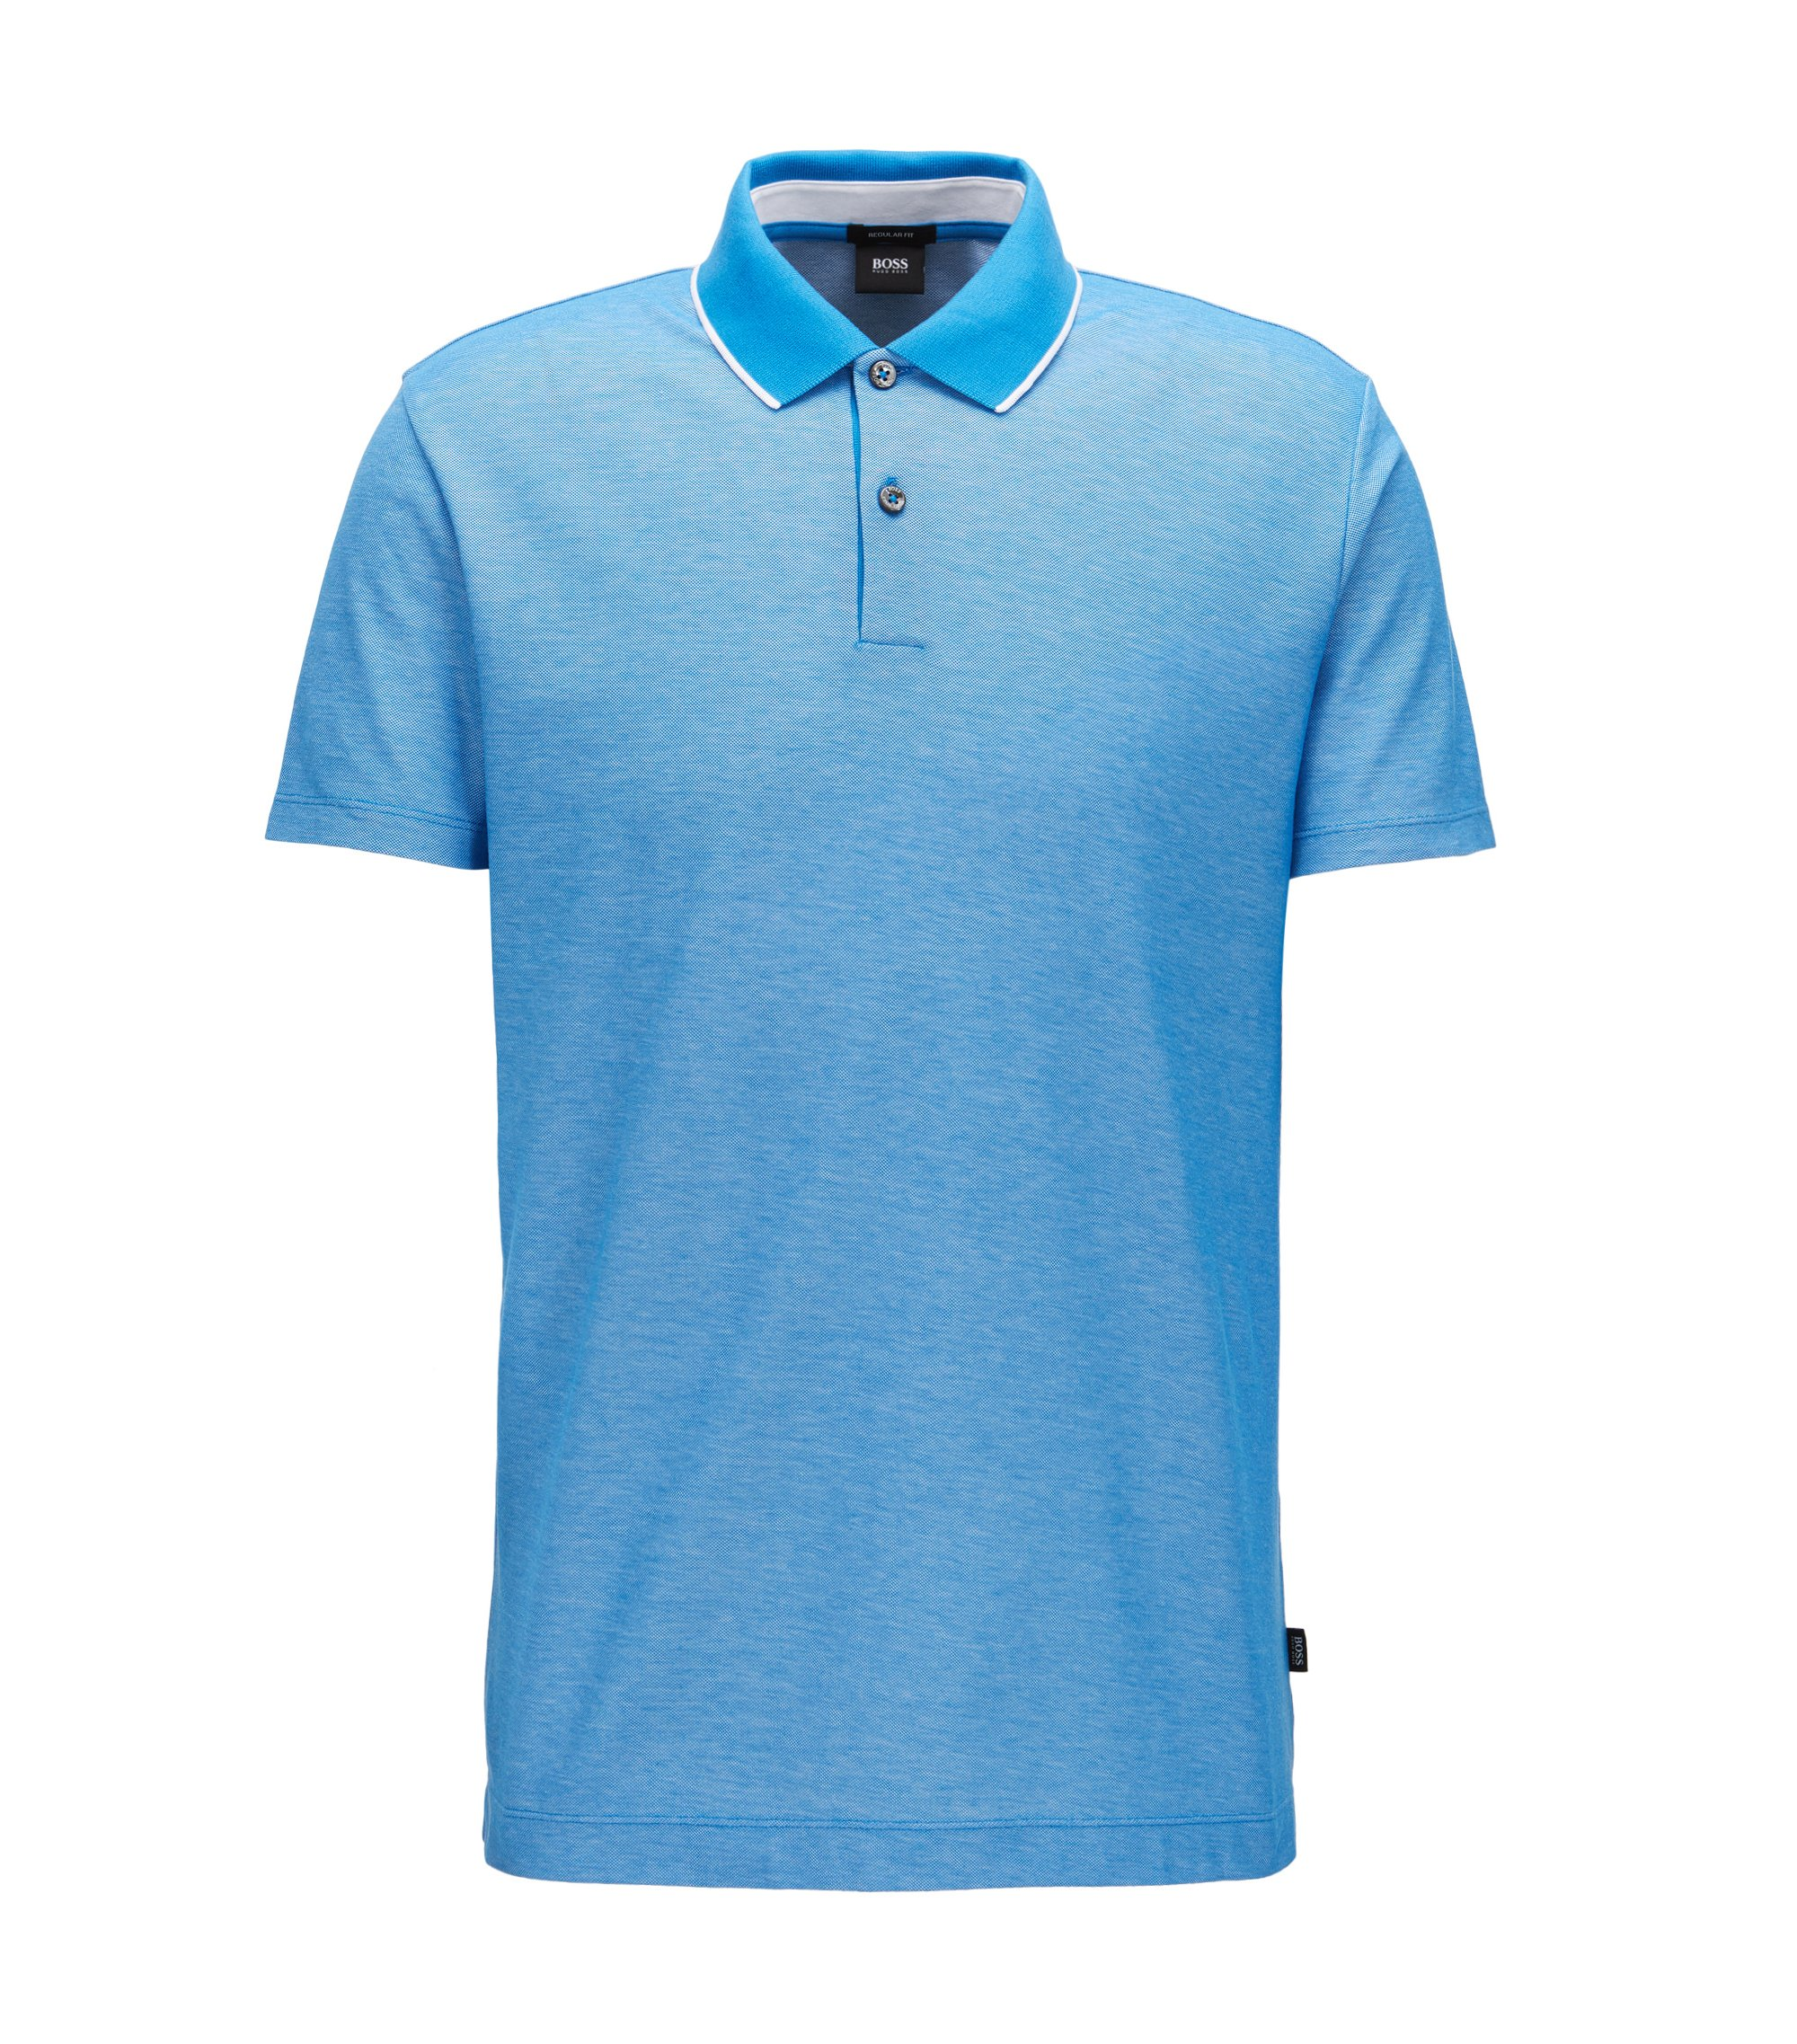 Tipped Cotton Polo Shirt, Regular Fit | Piket, Blue